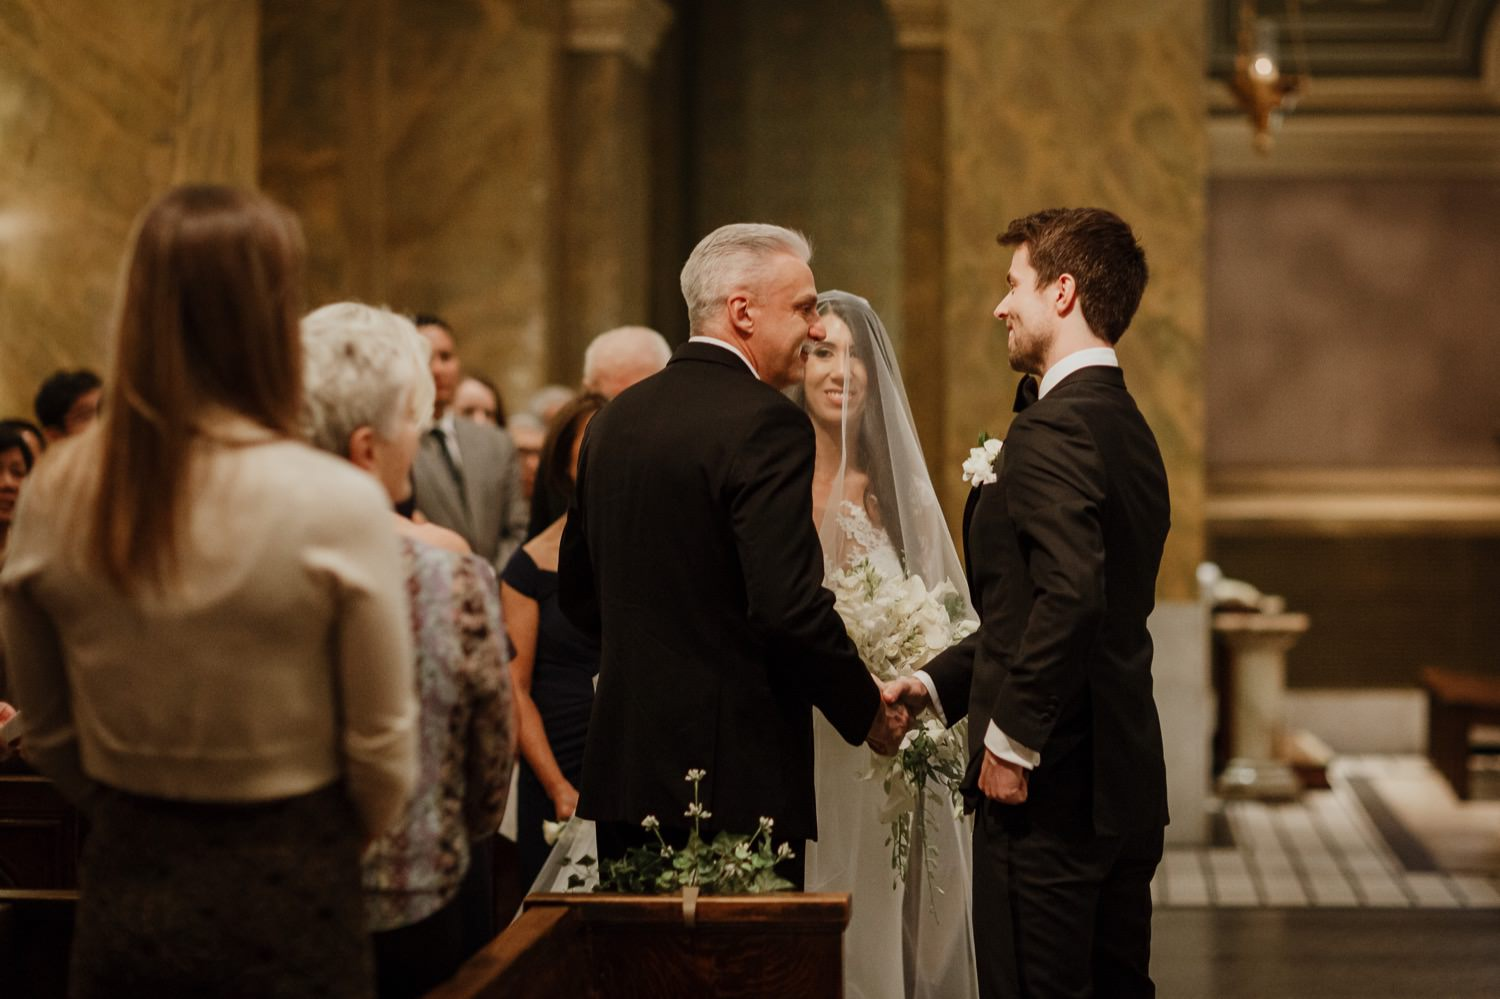 The groom giving away the bride in St. Clement Church on the wedding day